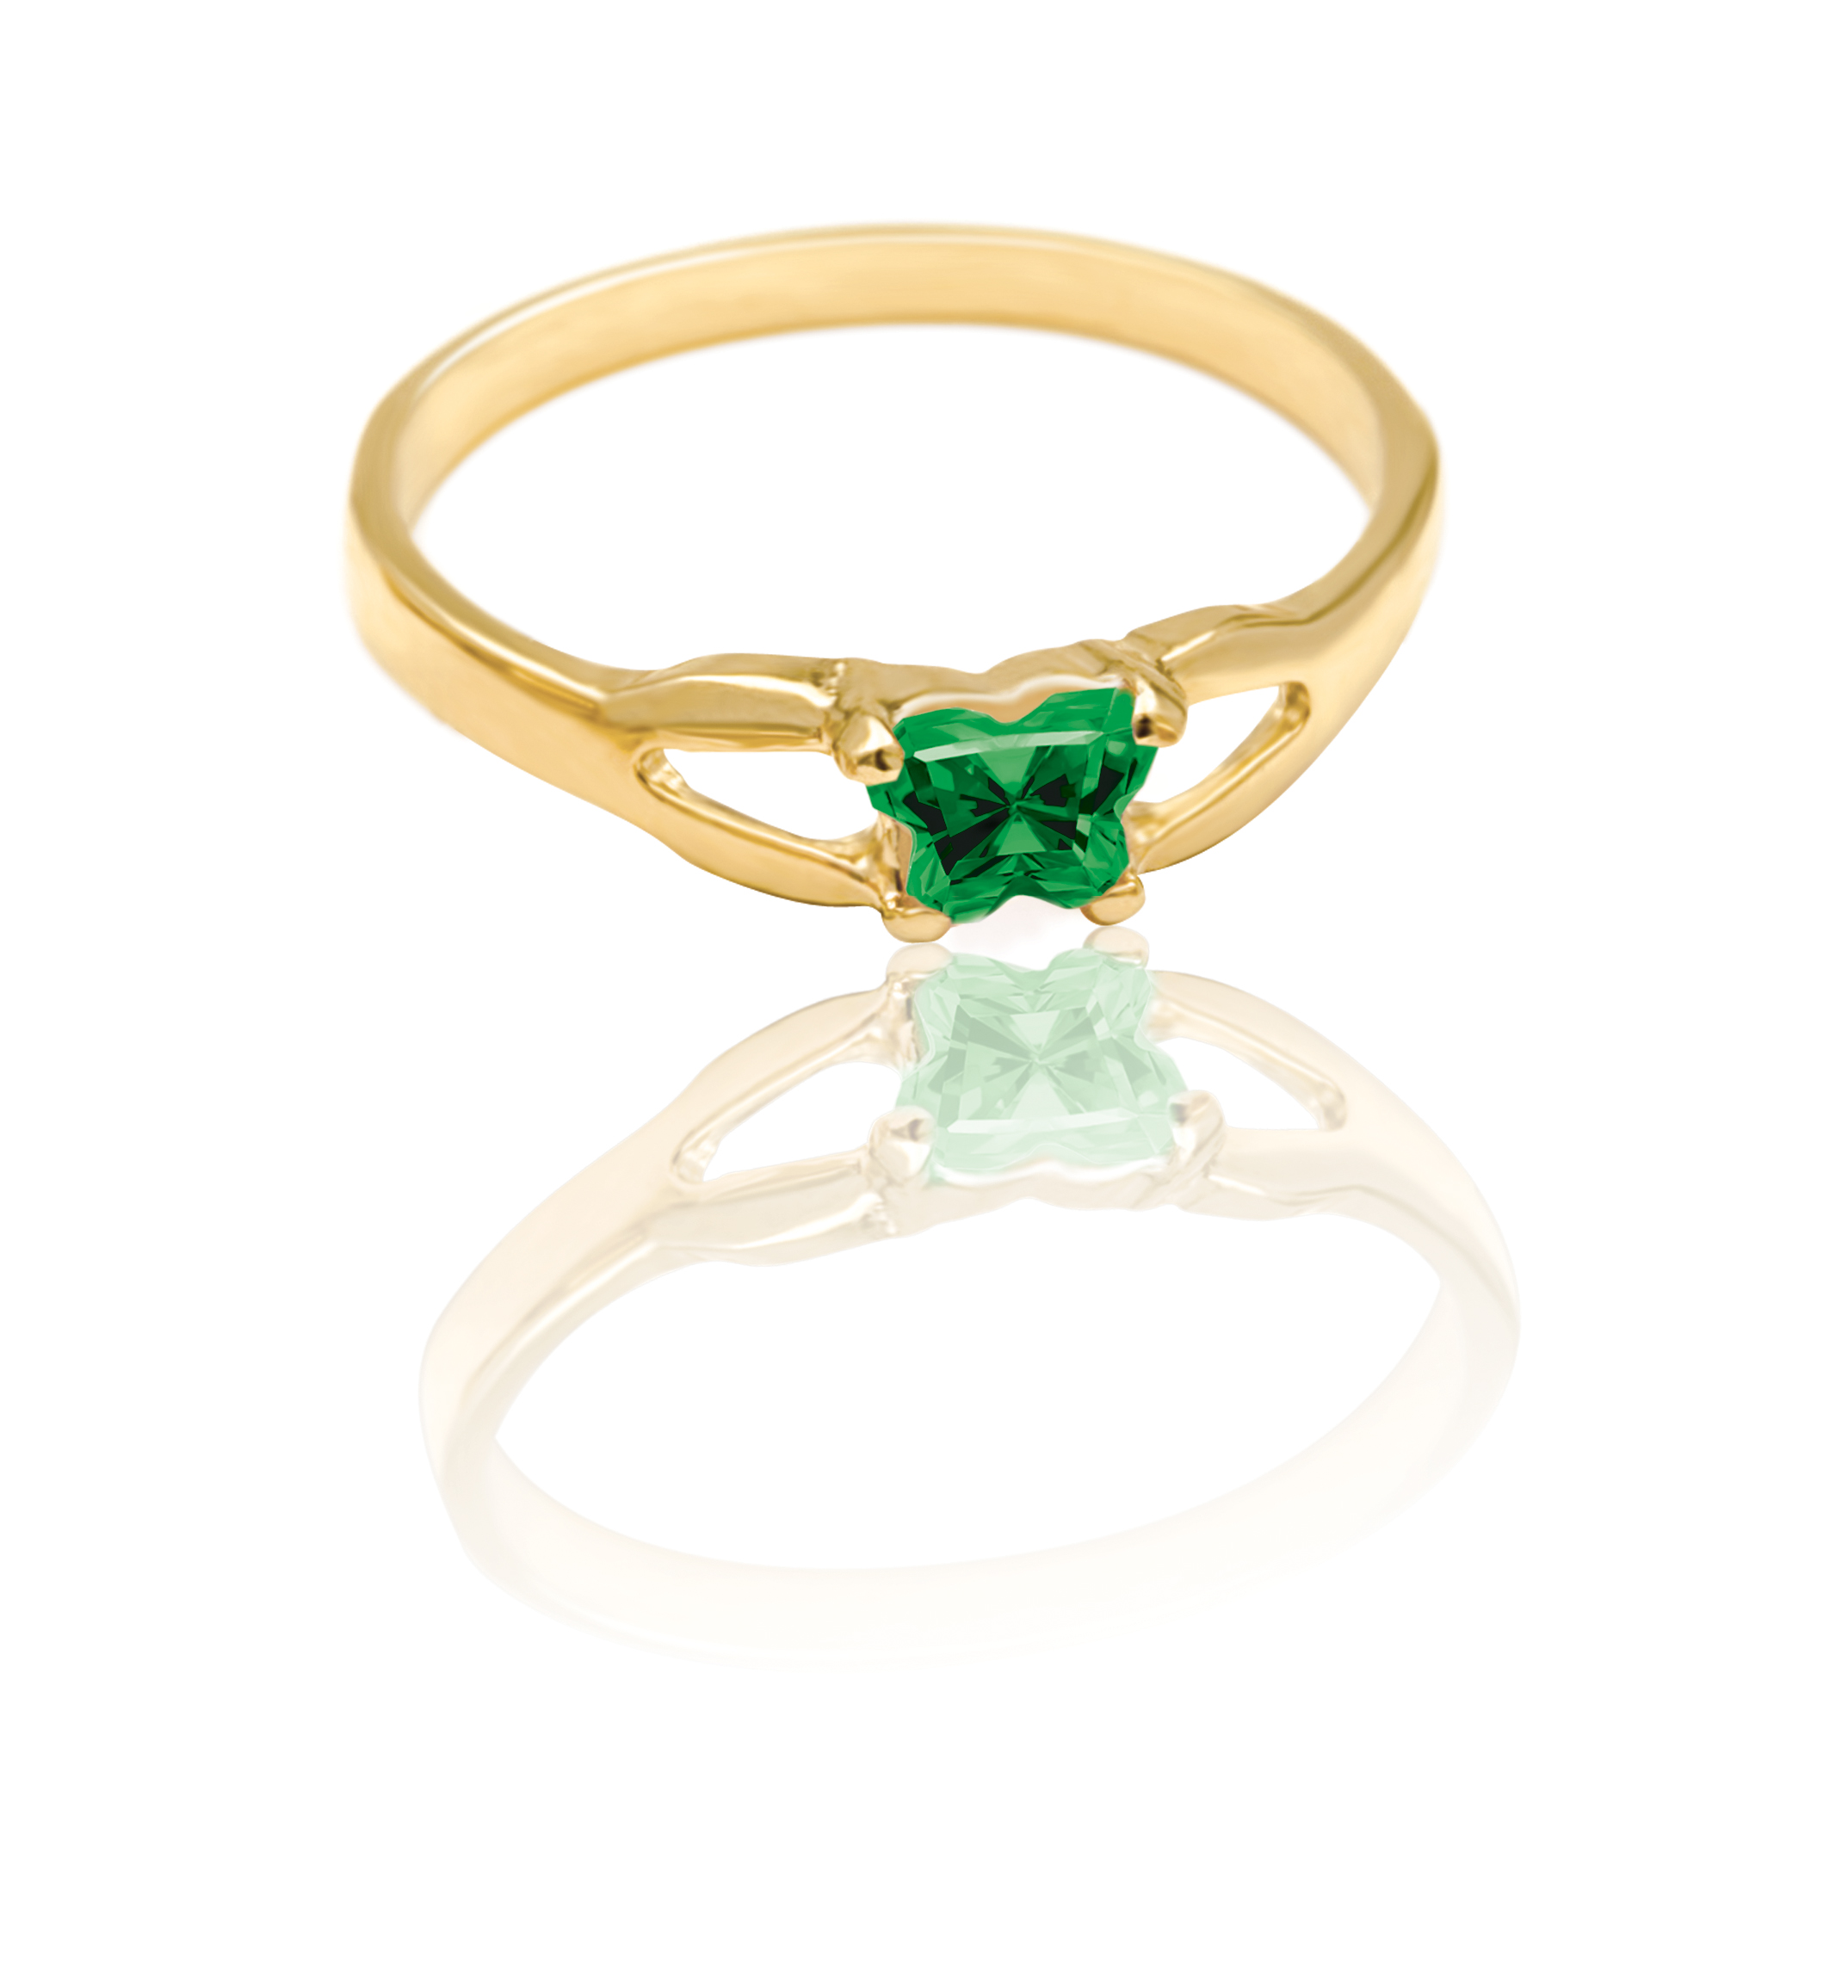 ring for child - 10K yellow Gold & Green cubic zirconia (month of May)*